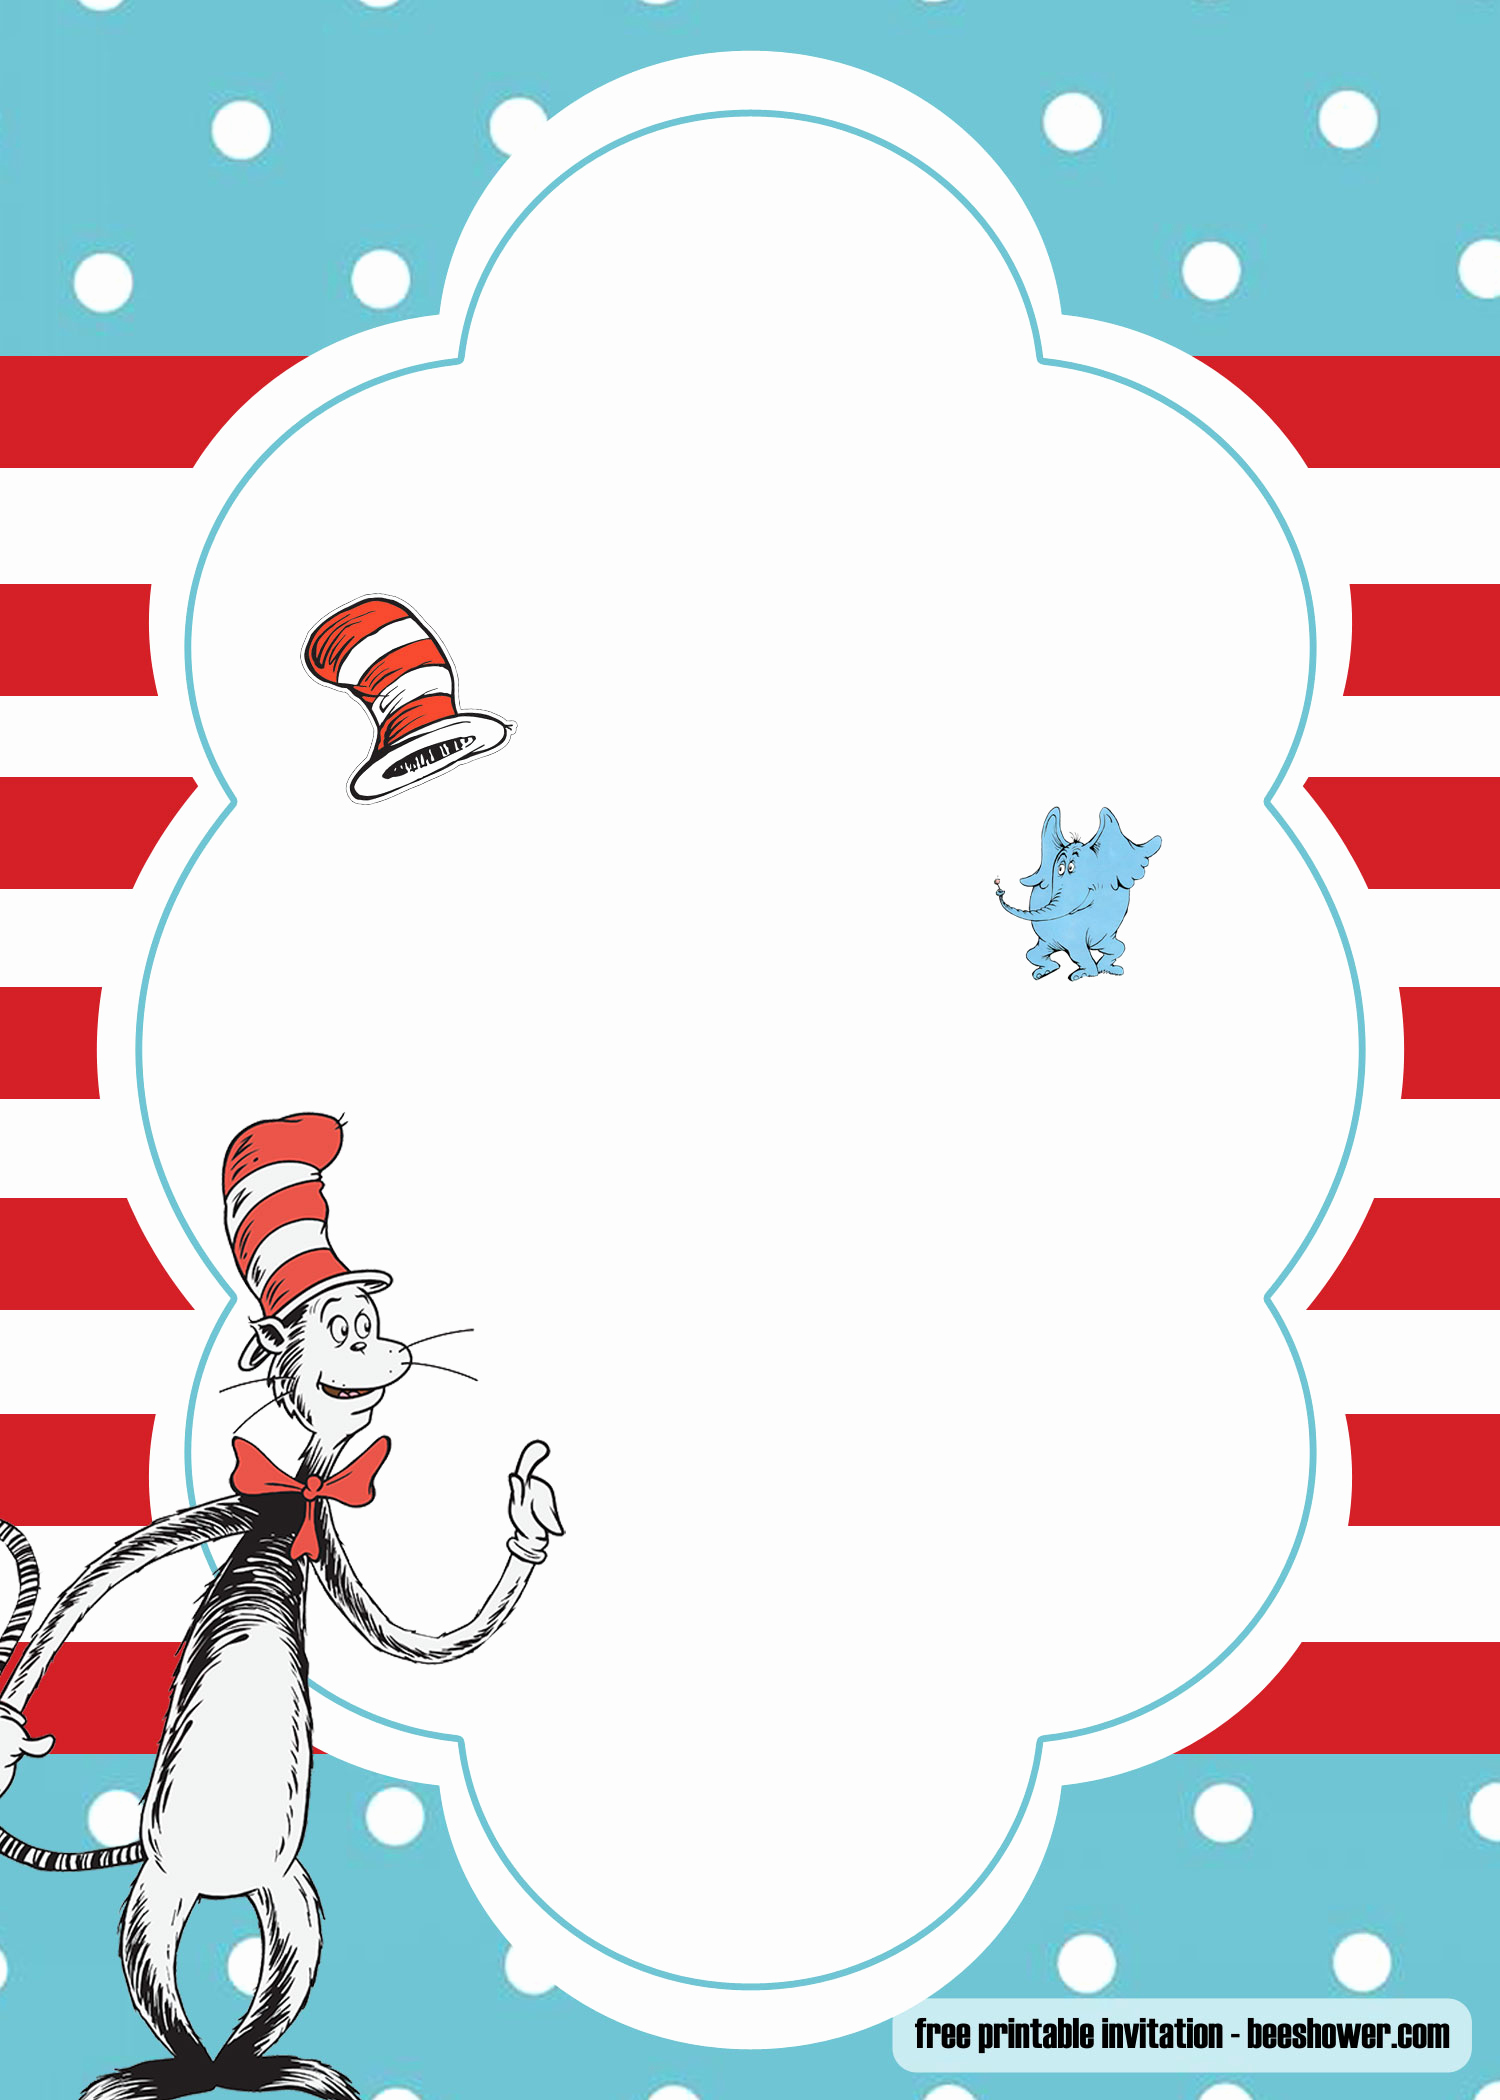 Dr Seuss Invitation Template Free Beautiful Free Dr Seuss Template for Your Baby Shower Invitations